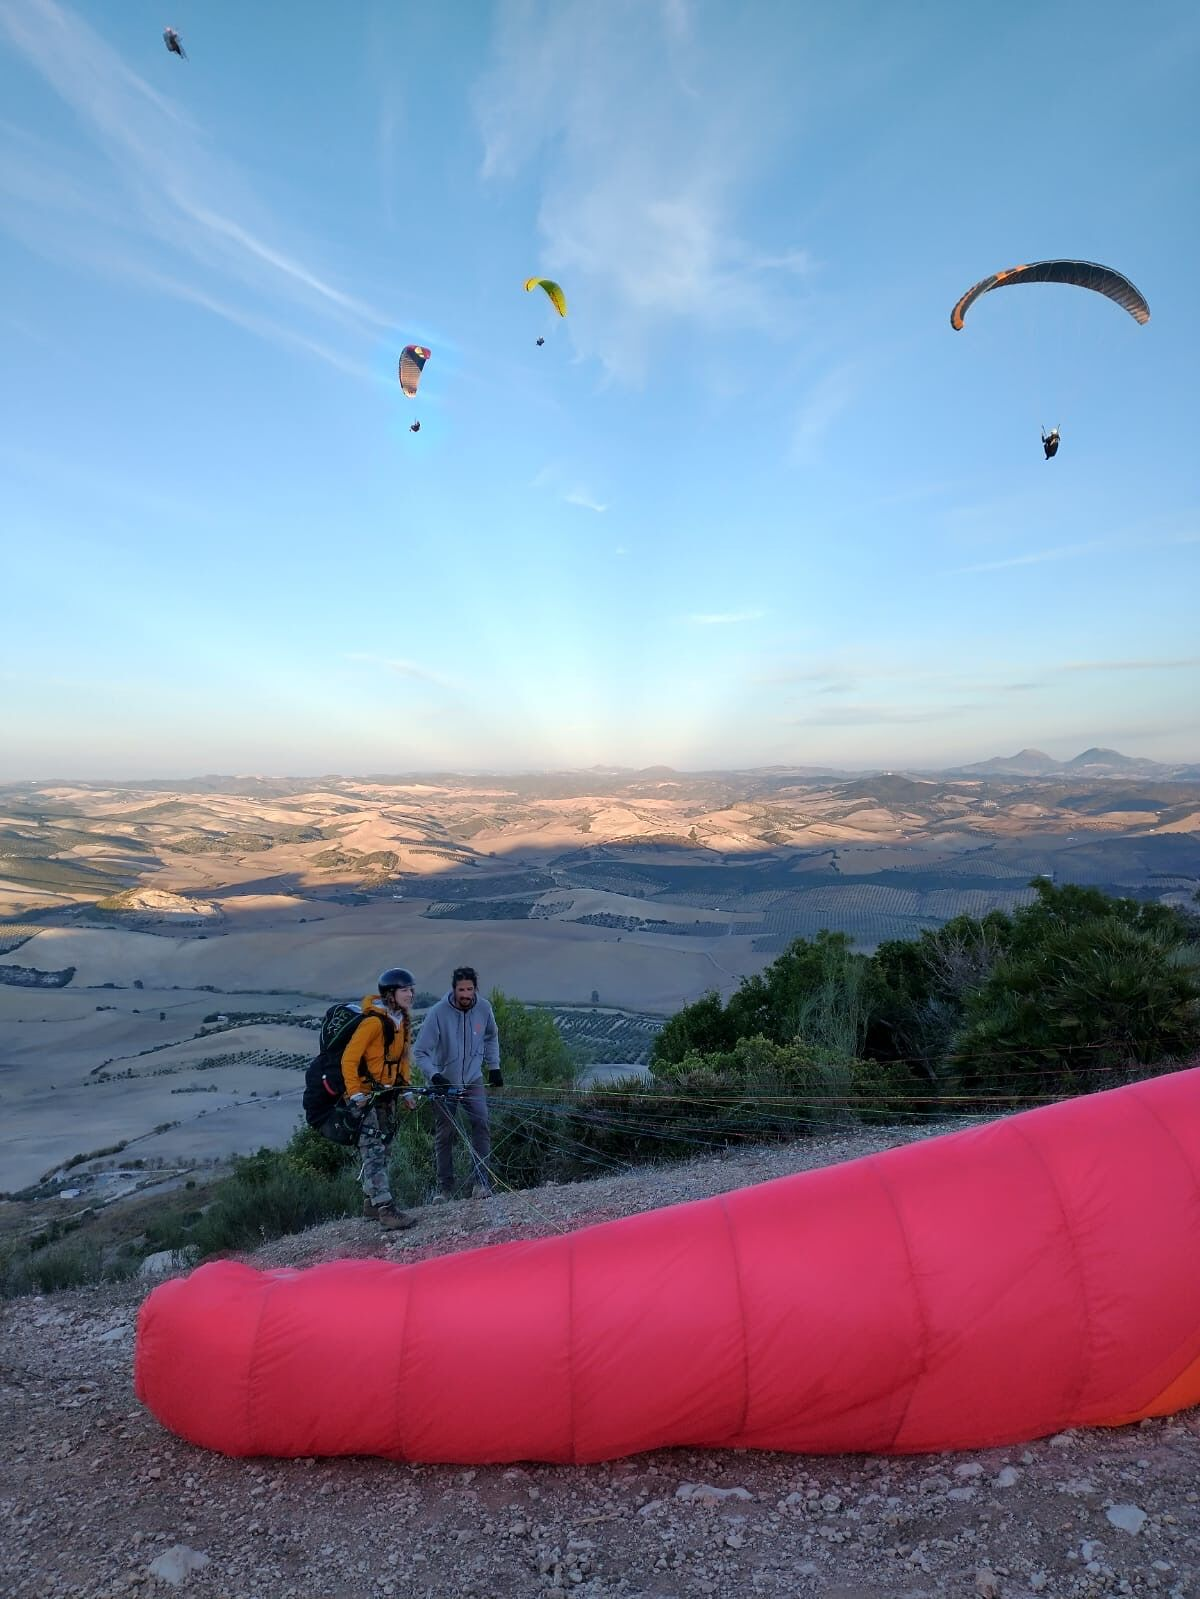 Awesome autumn Paragliding lessons in Spain